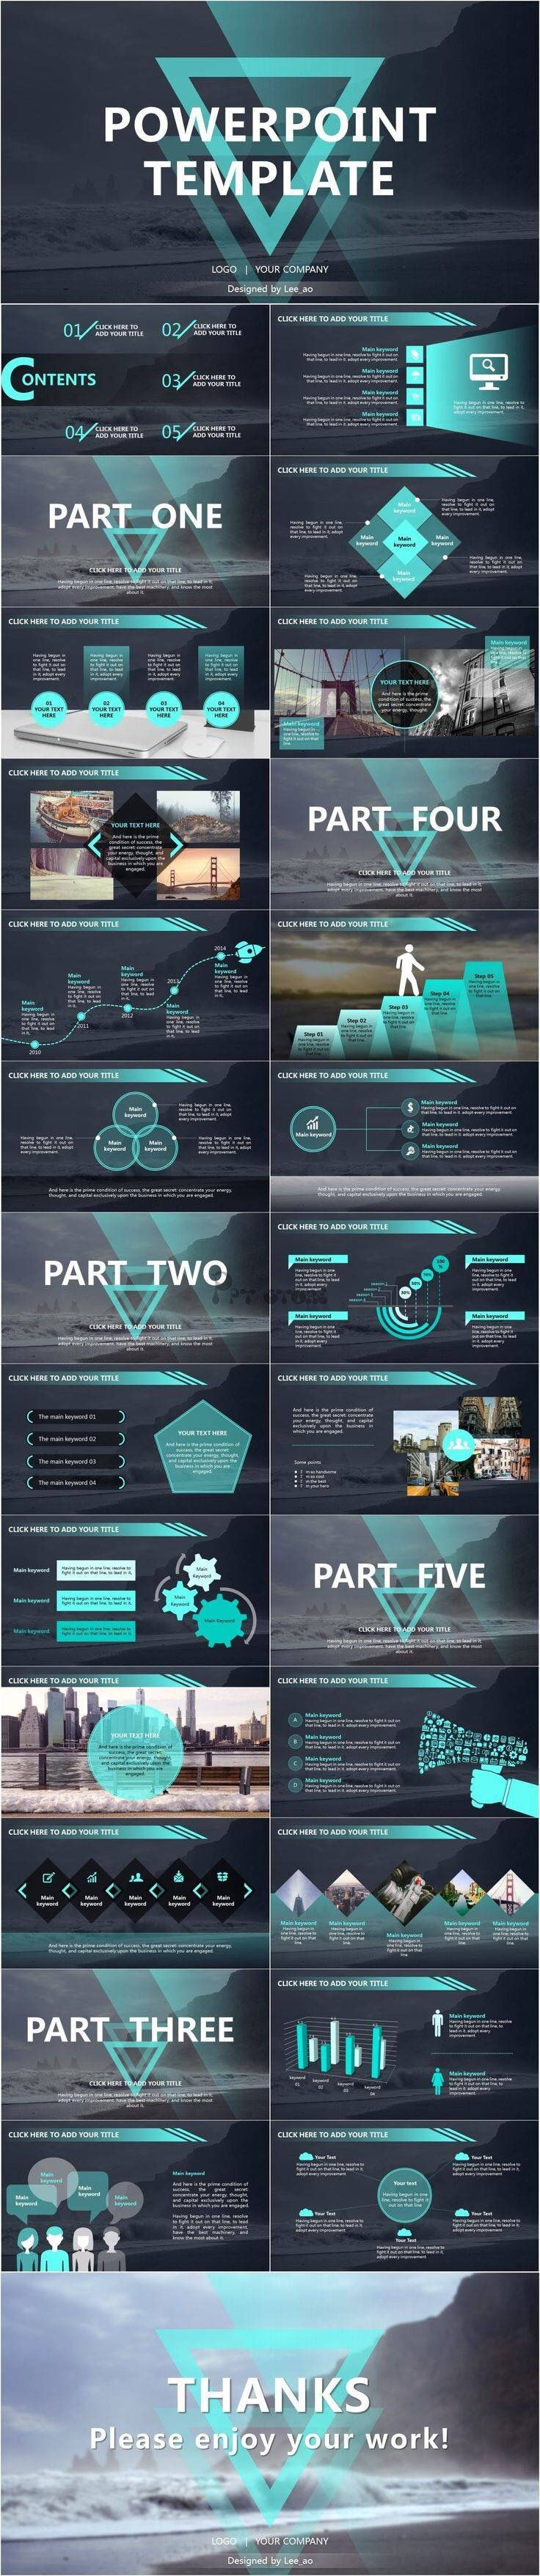 Another excellent #Powerpoint #Keynote #template